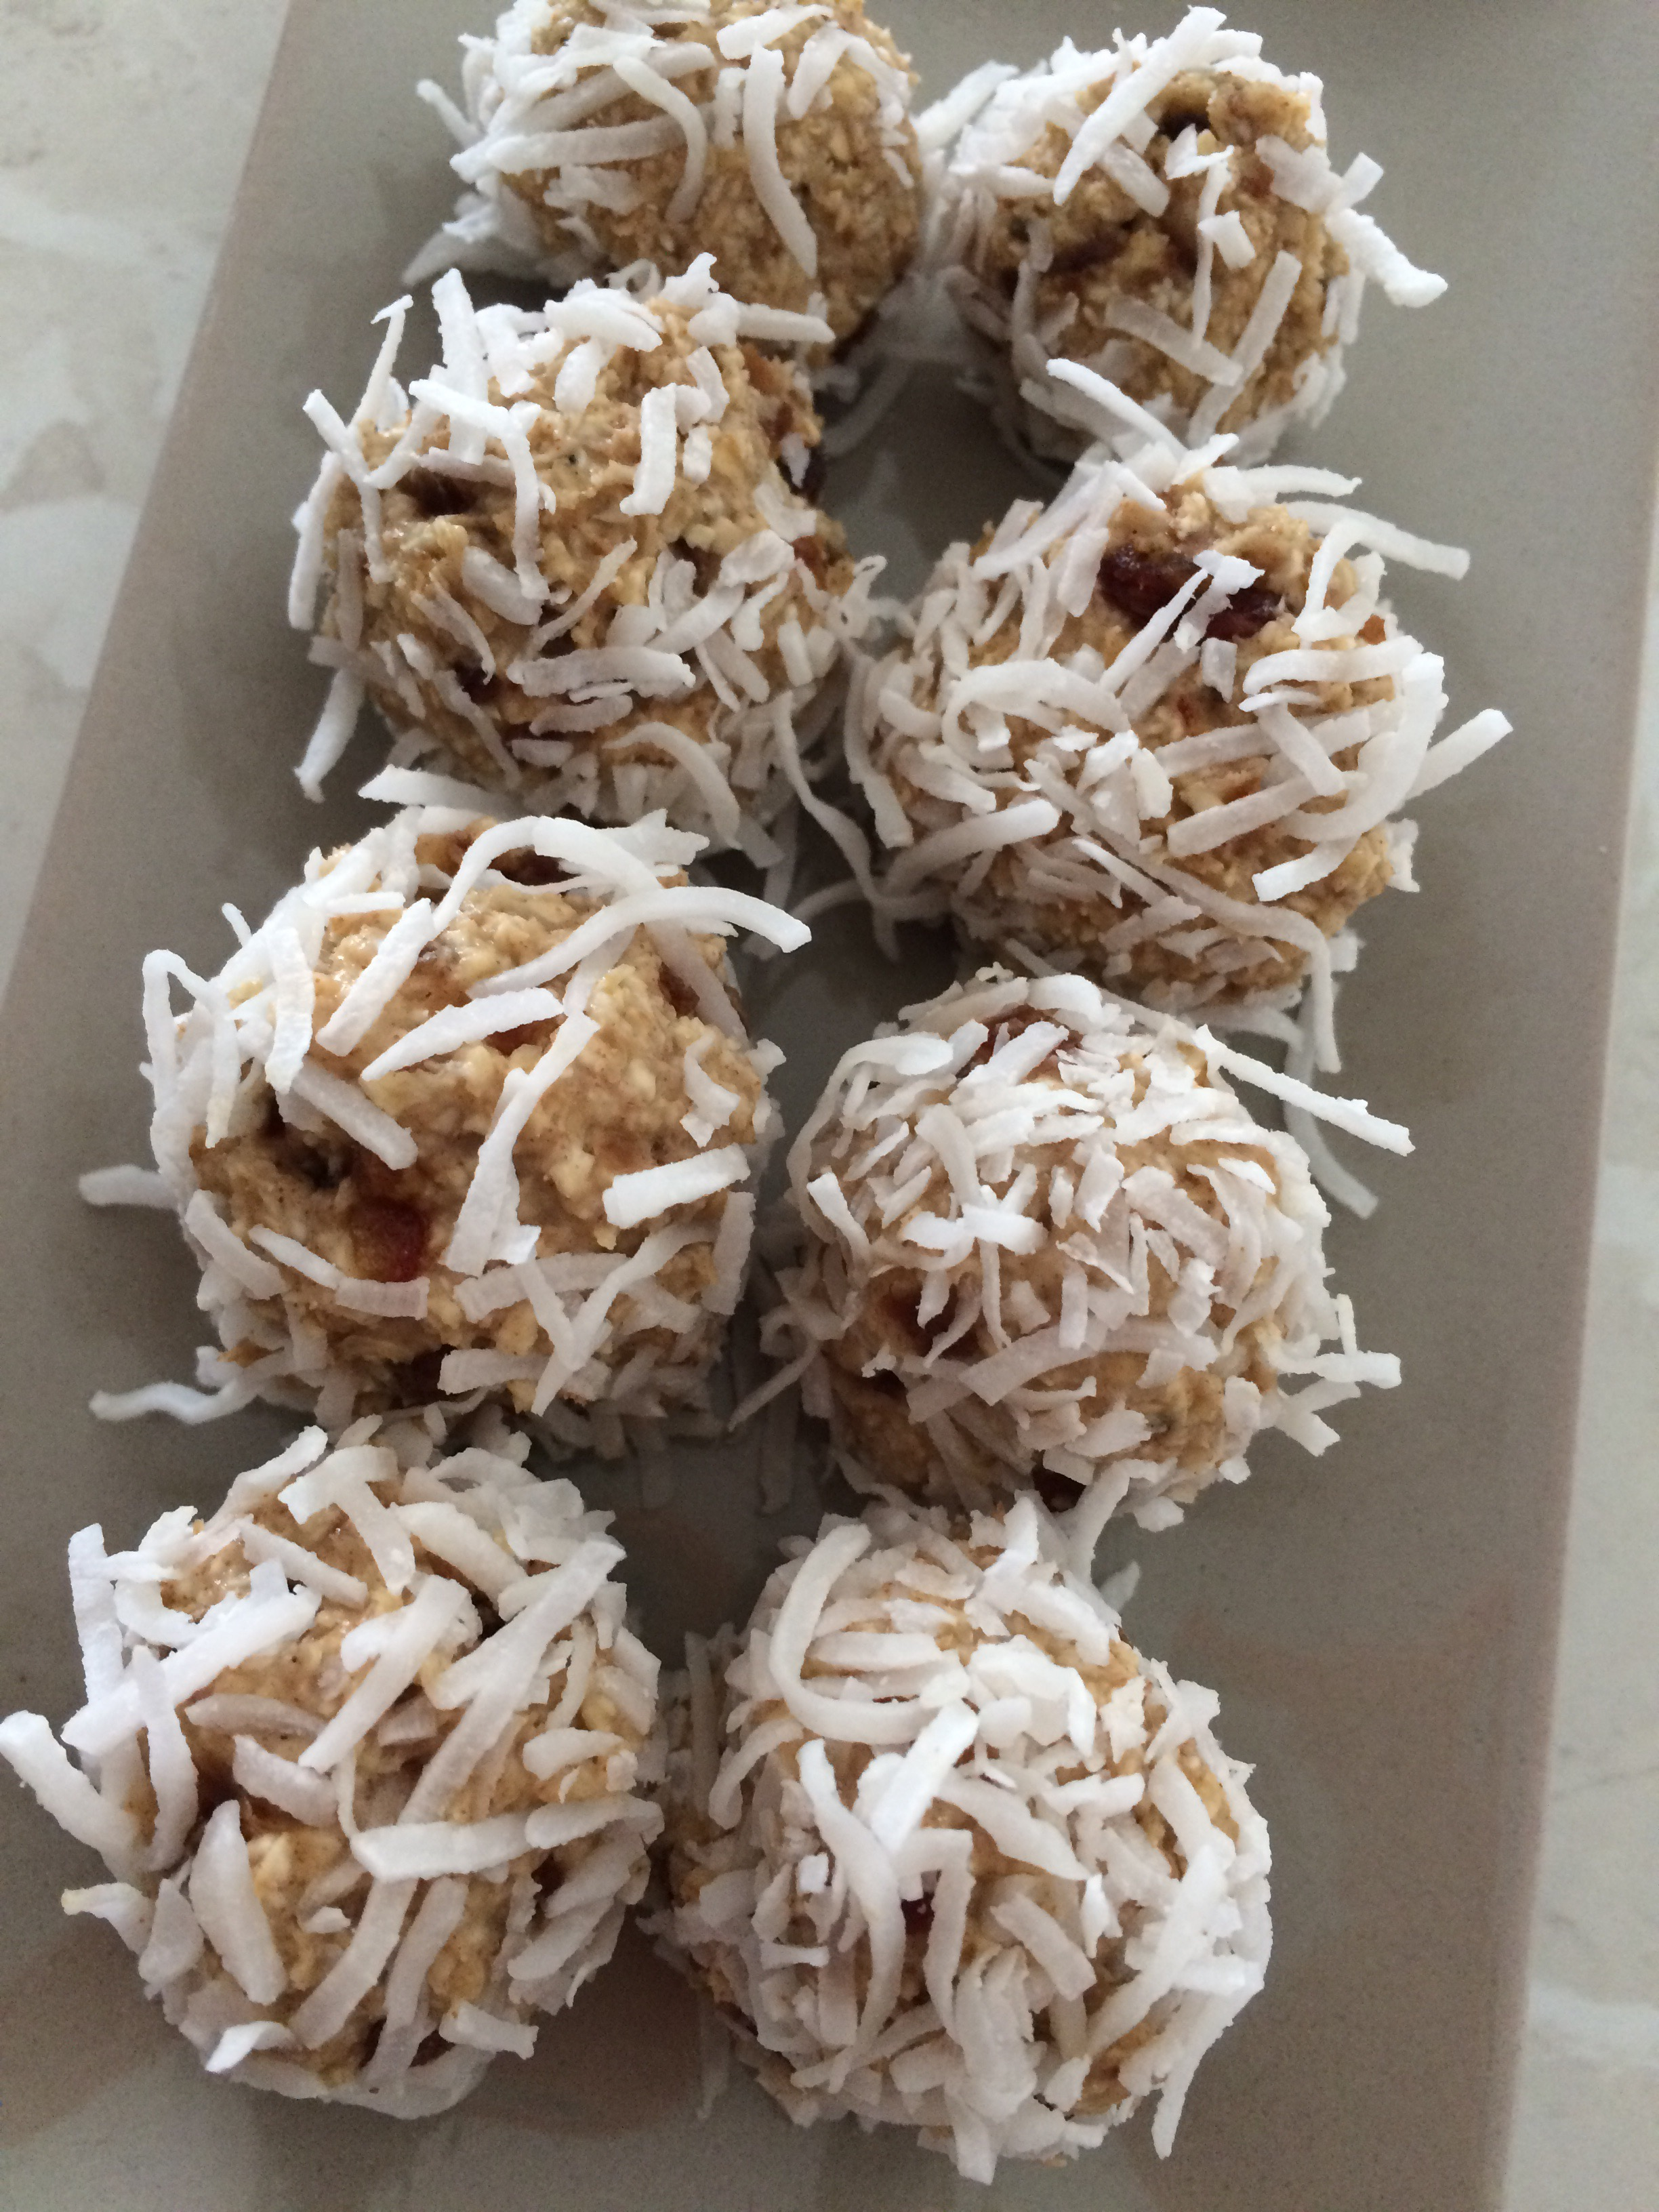 Banana and Date Bliss Balls